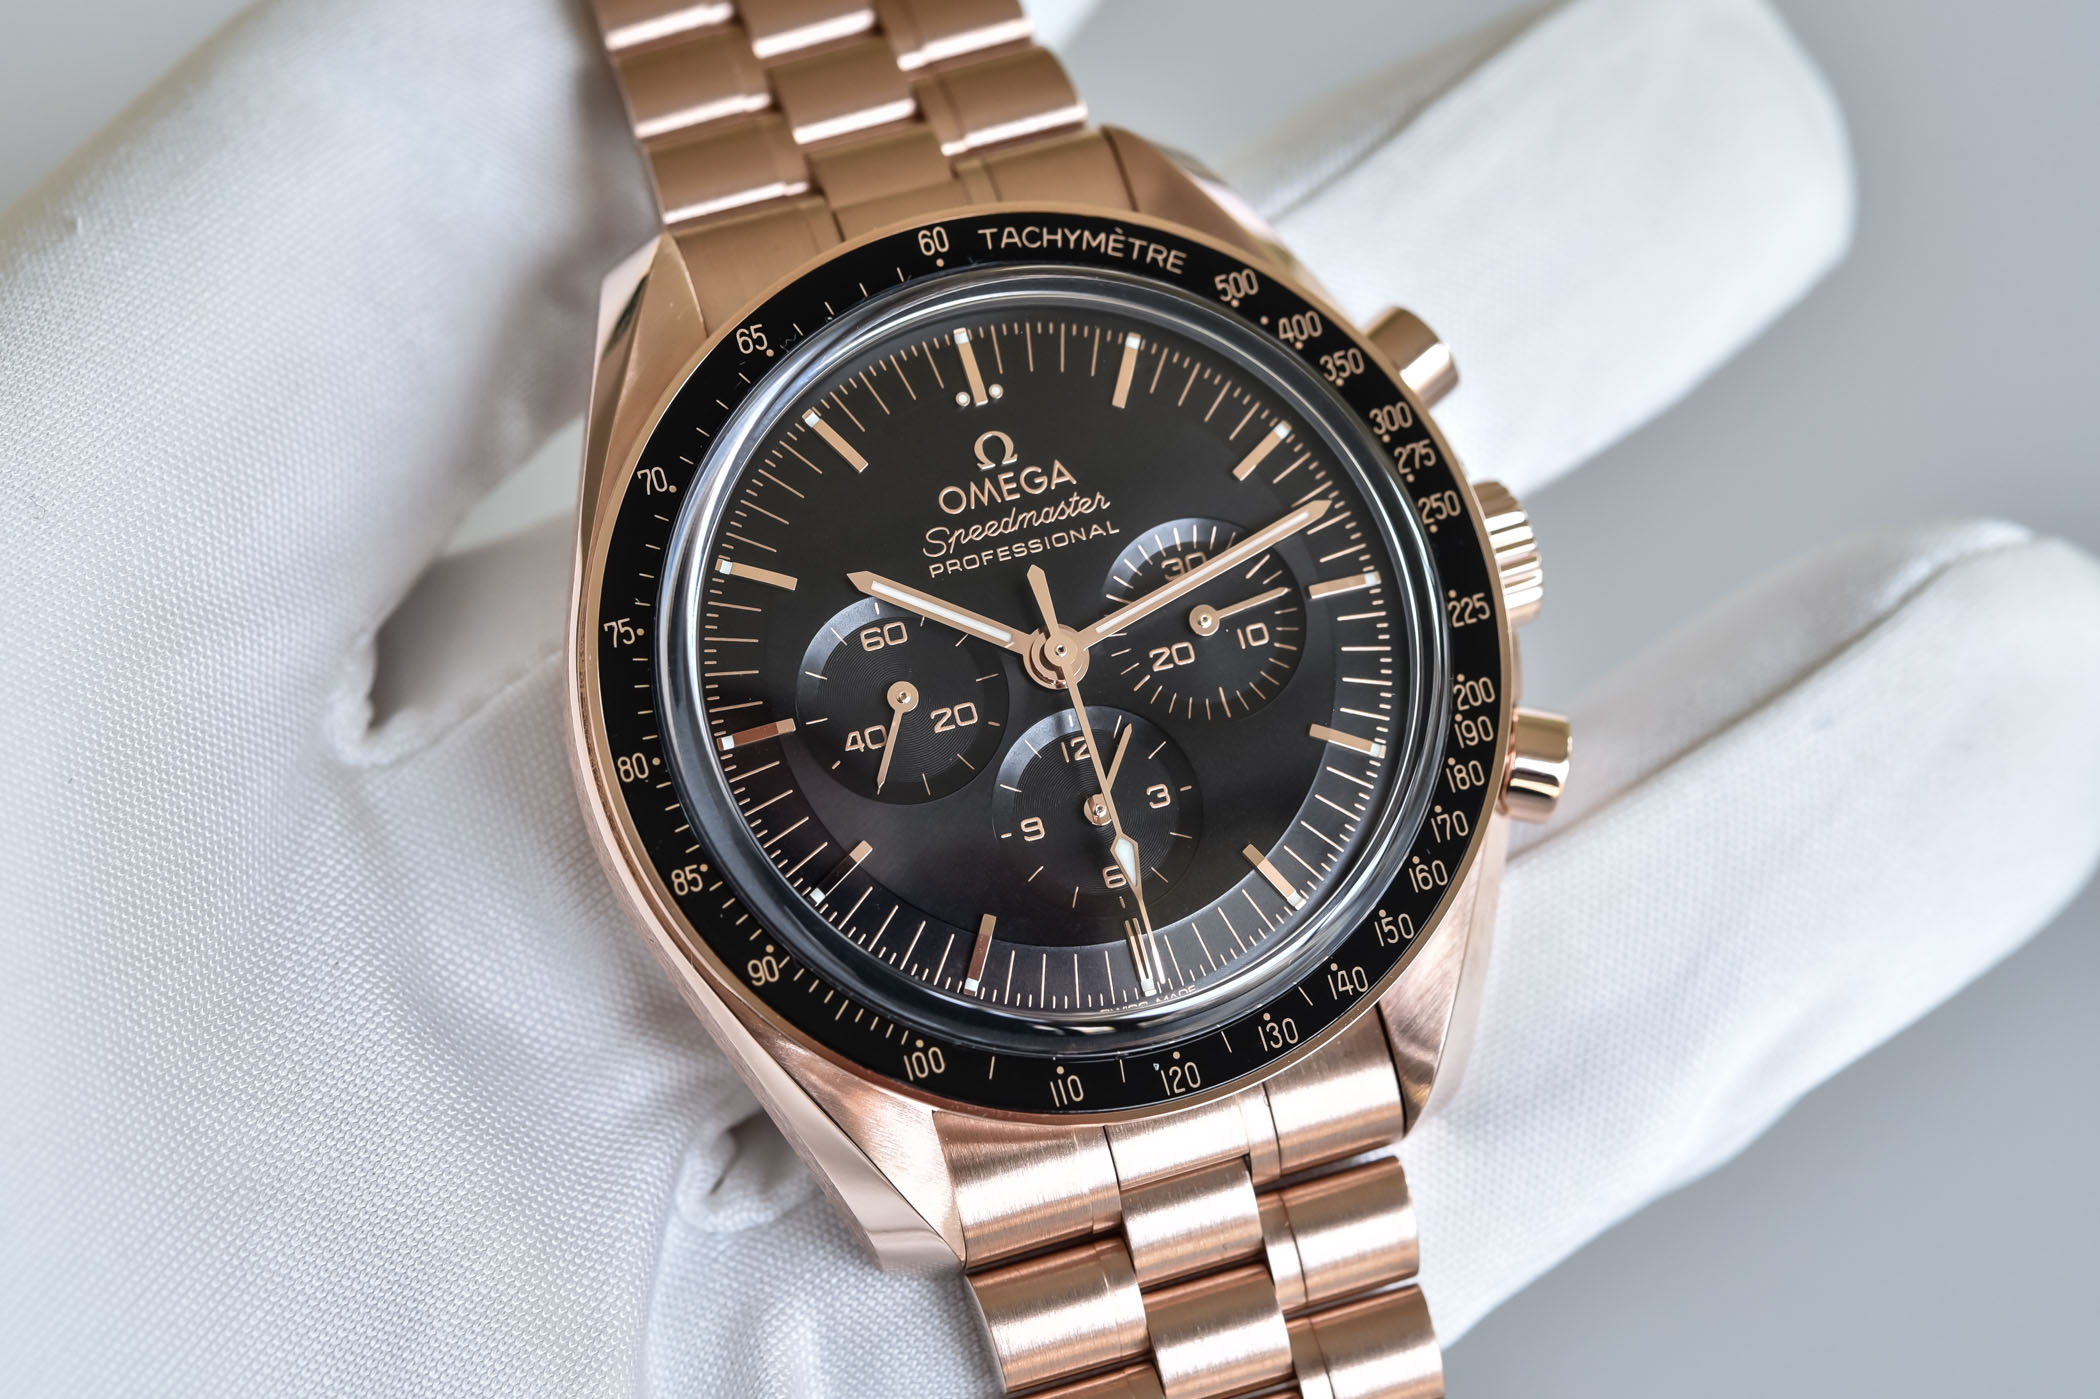 2021 Omega Speedmaster Moonwatch Profressional Co-Axial Master Chronometer Sedna Gold - 310.60.42.50.01.001